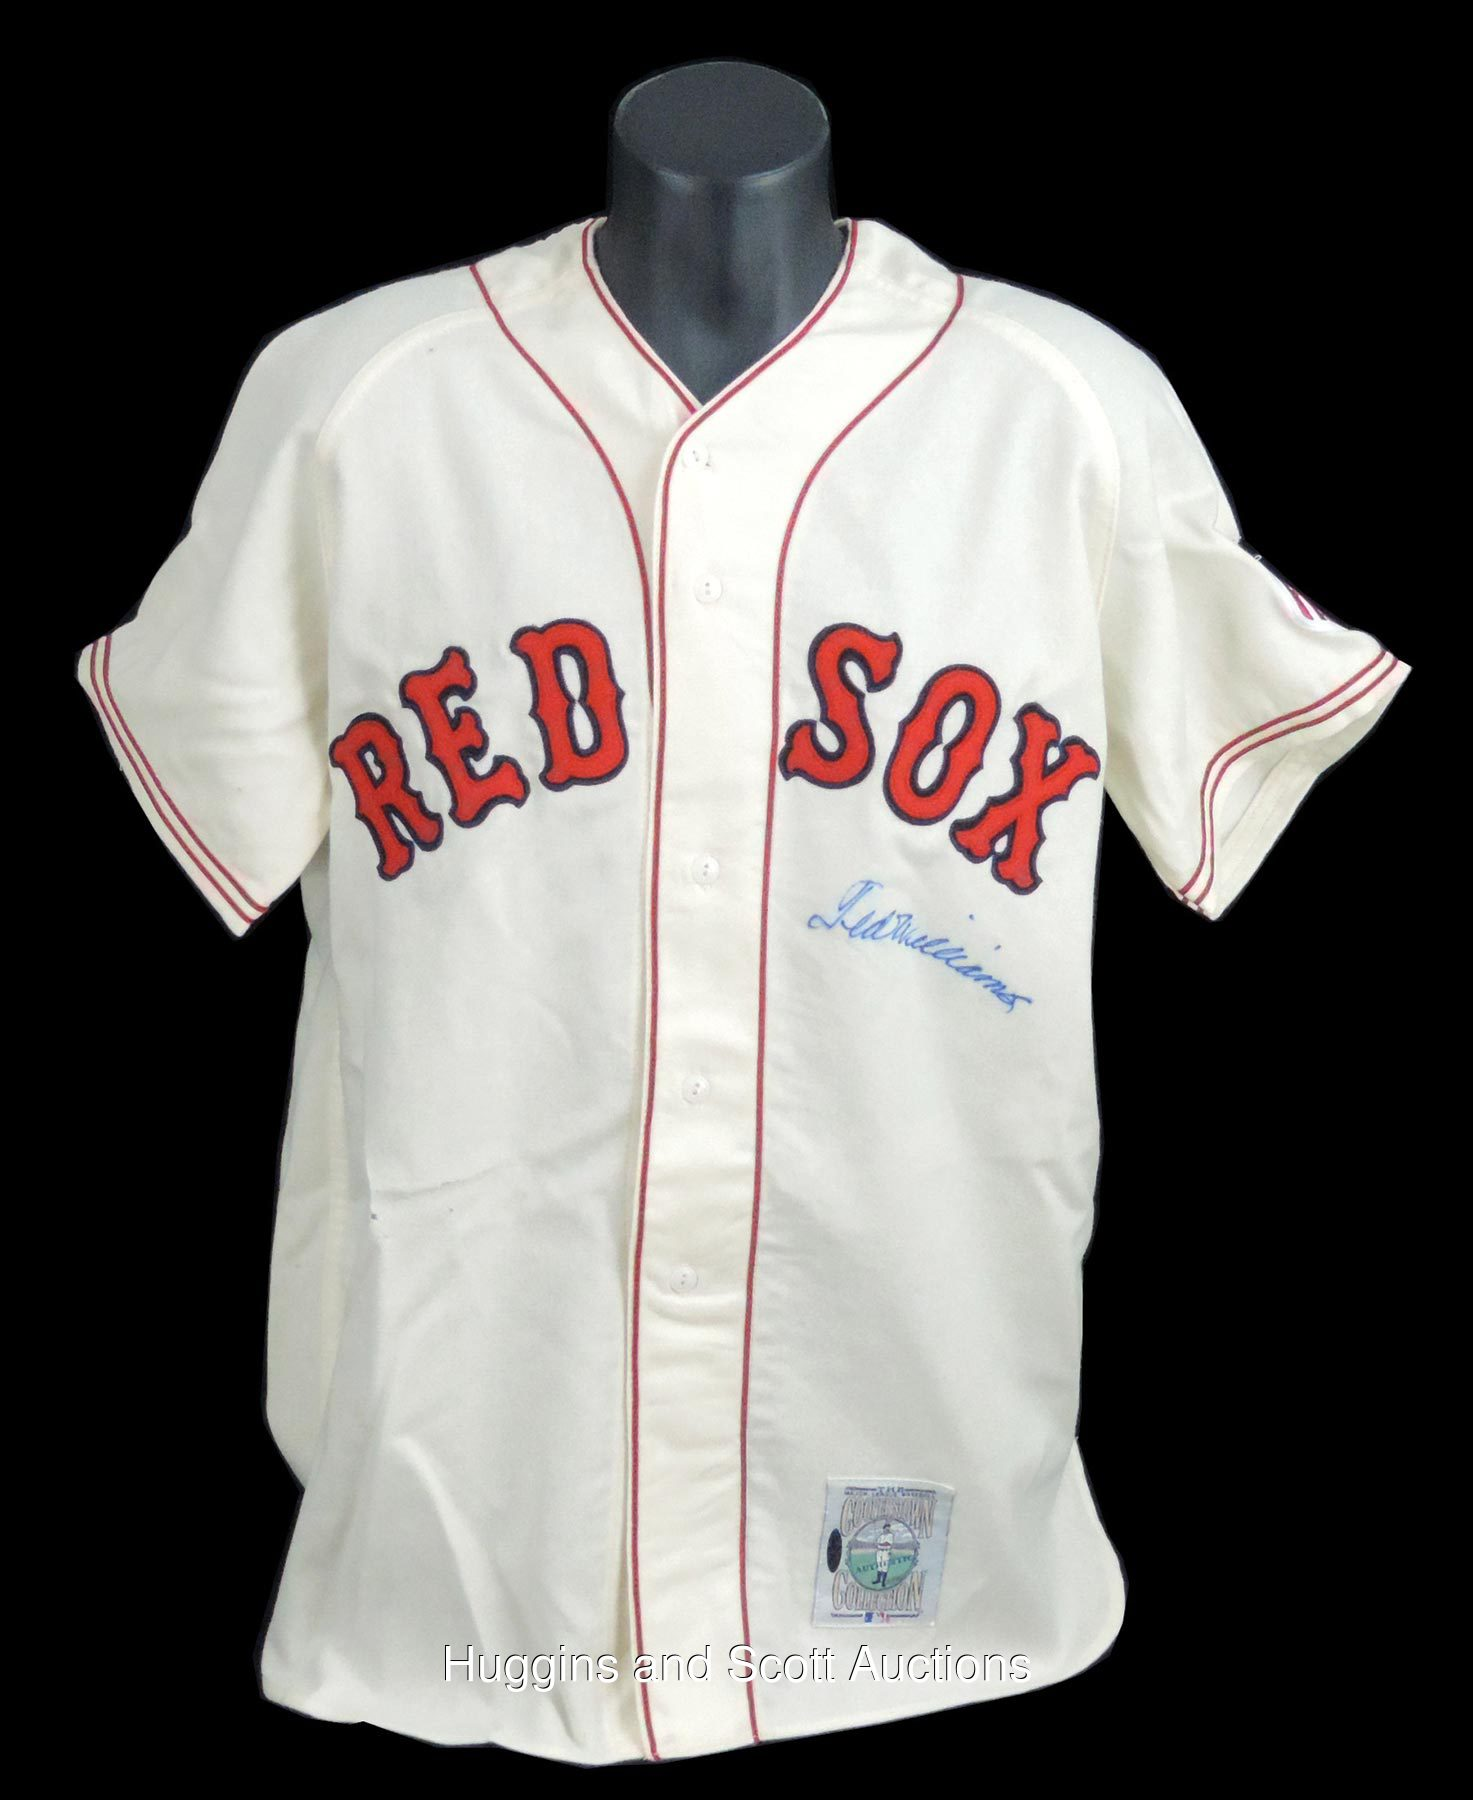 best value 6ef7e 79c8d Ted Williams Signed Mitchell & Ness 1942 Red Sox Jersey - UDA